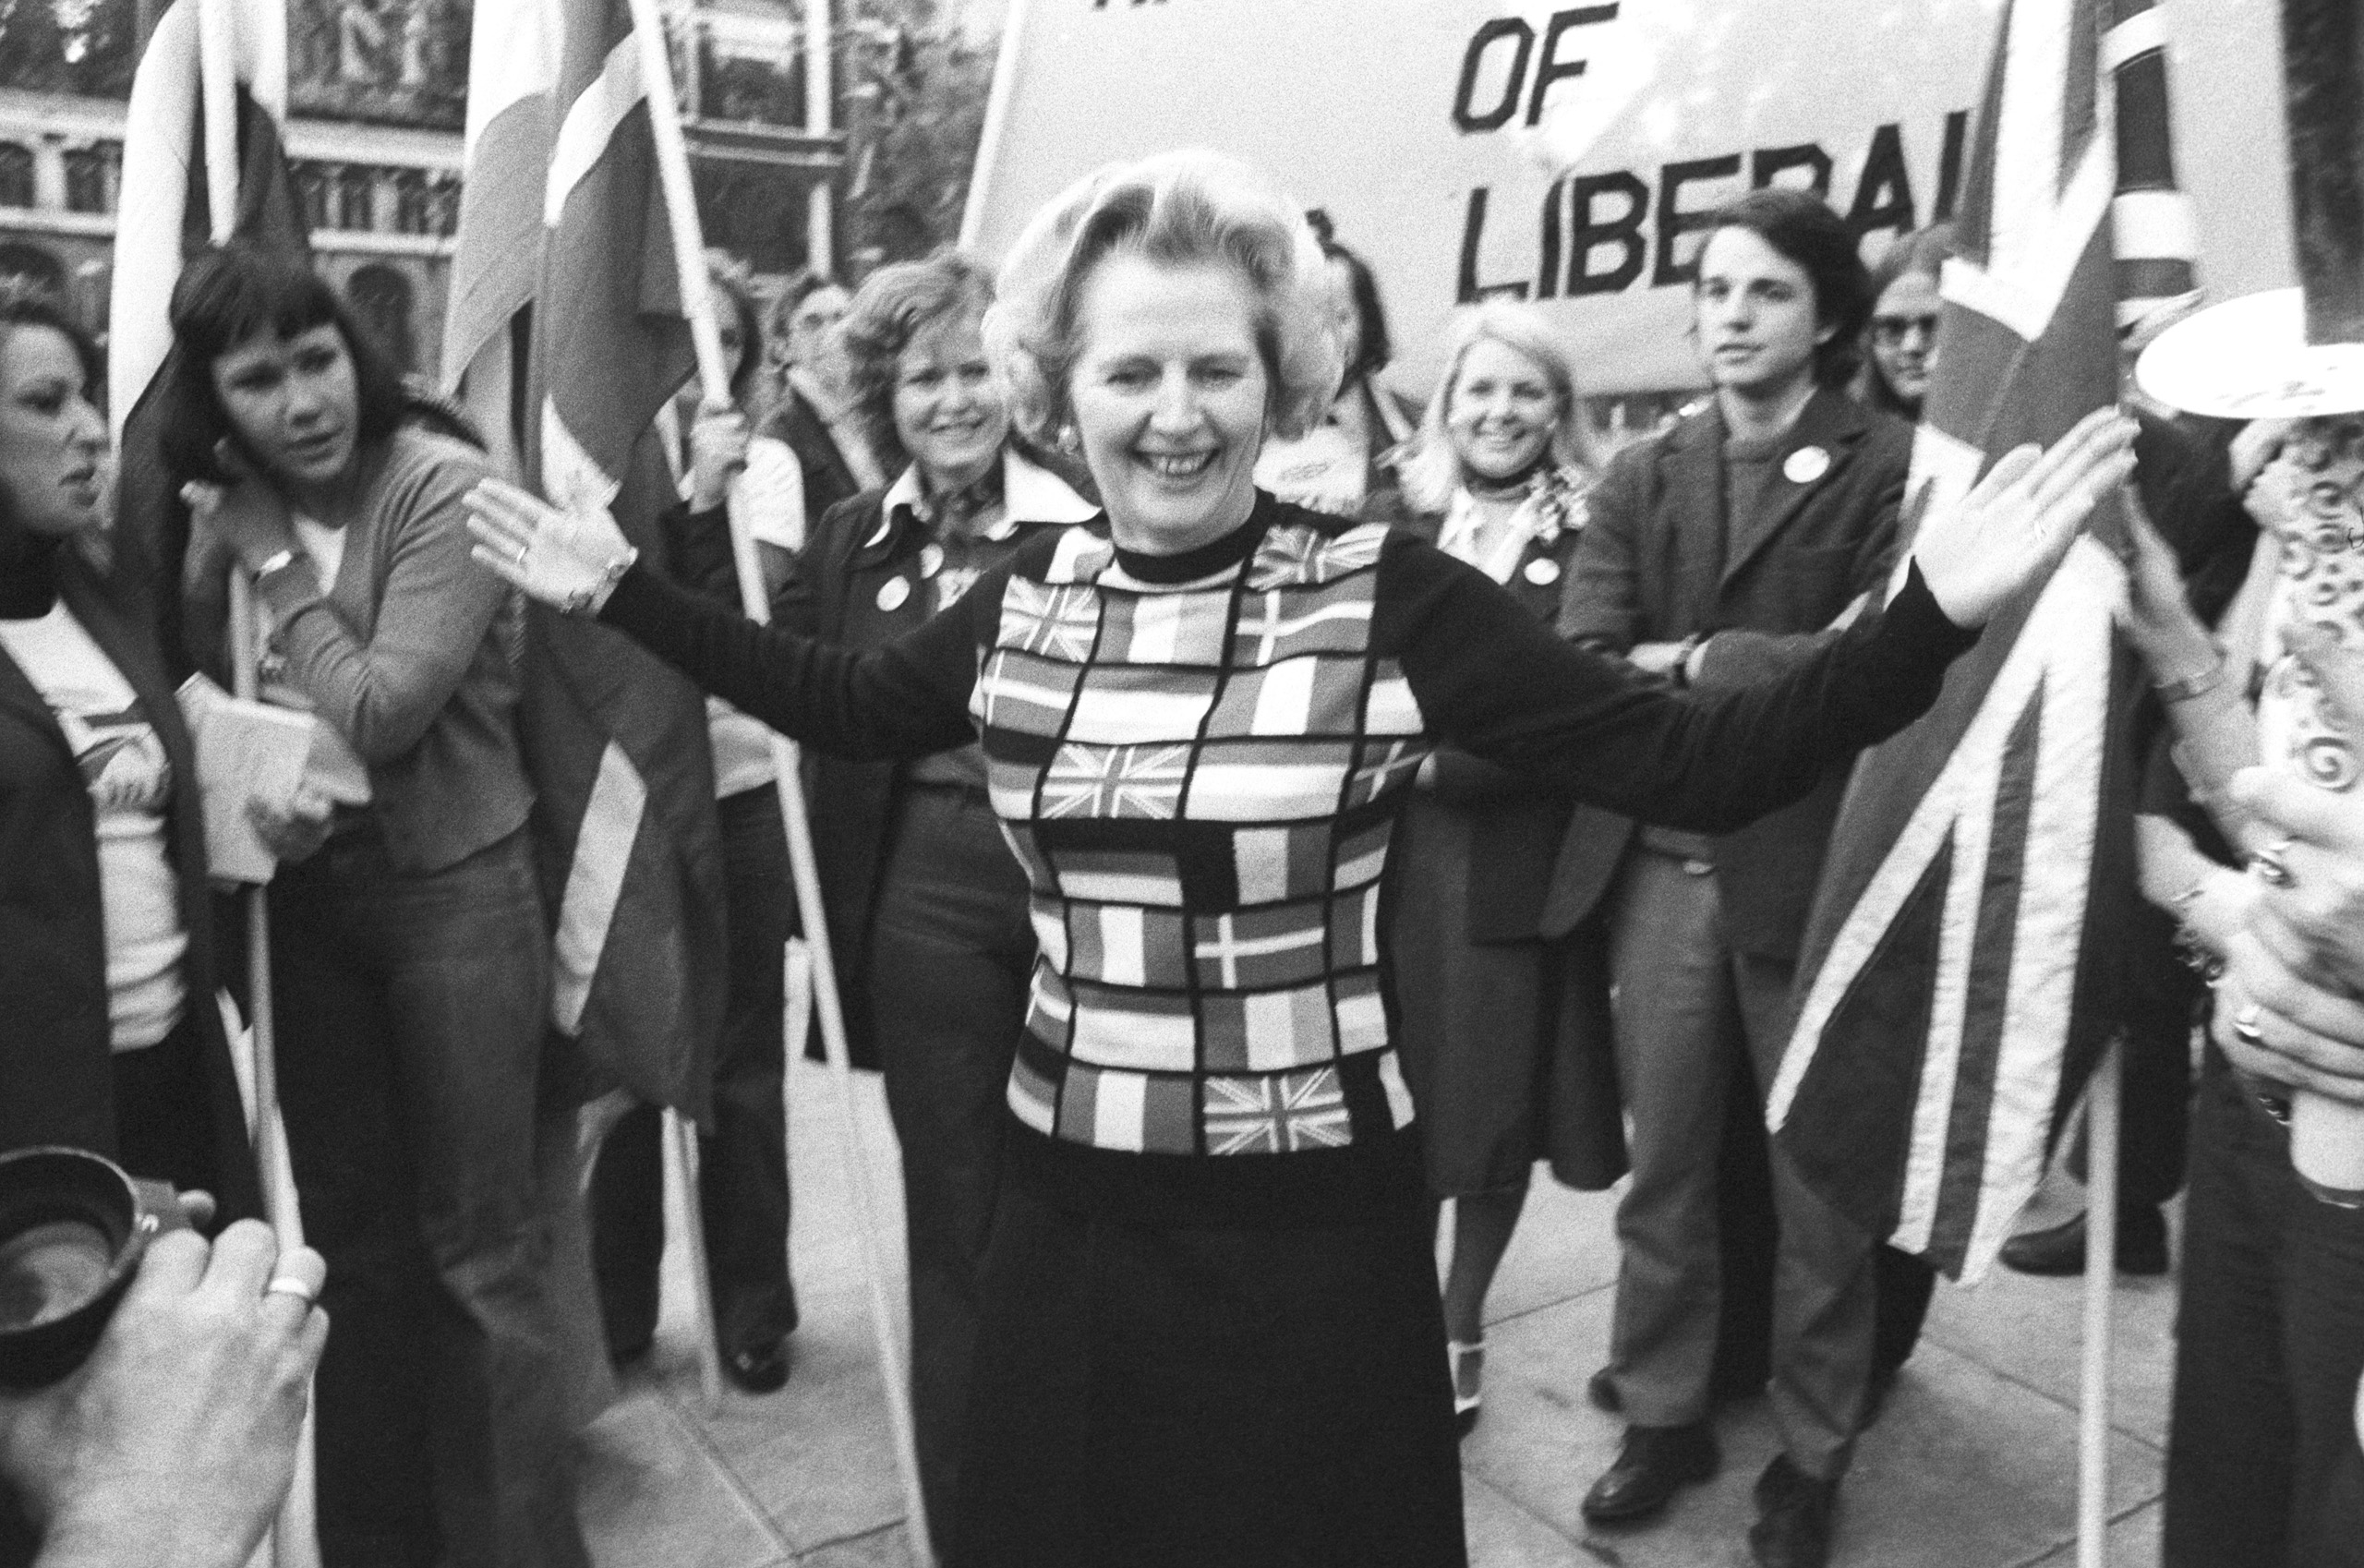 Margaret Thatcher, sporting a sweater bearing the flags of European nations, in Parliament Square during her 'Yes to Europe' campaign, 1975.